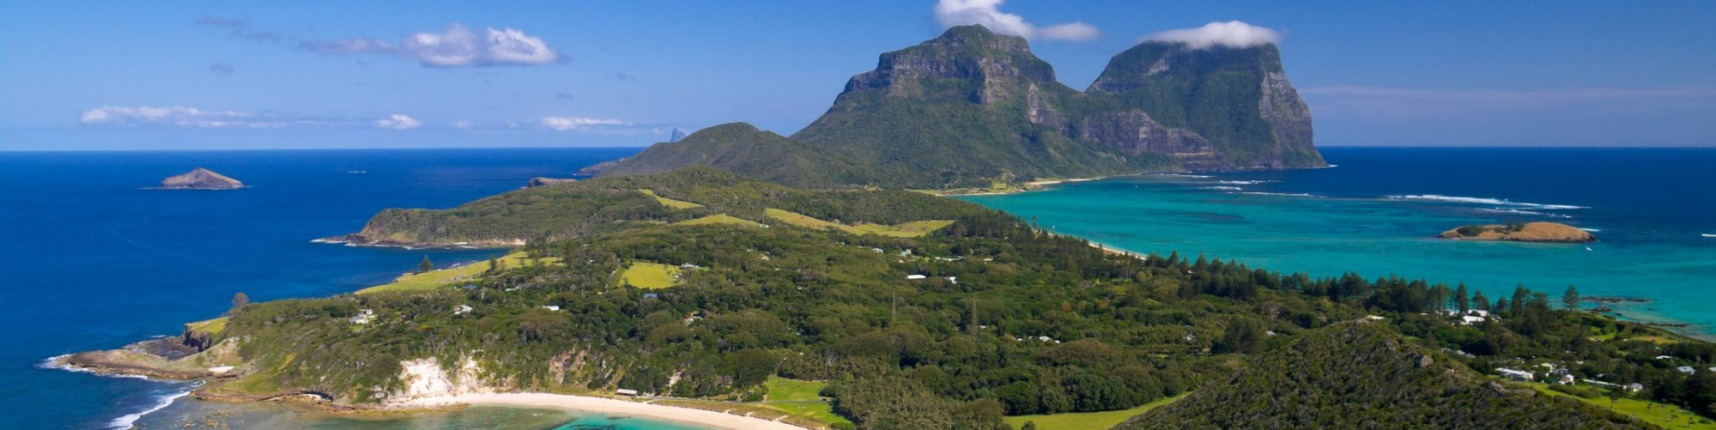 View south over the stunningly beautiful Lord Howe Island from Malabar lookout. Lagoons on both sides of the island are ...